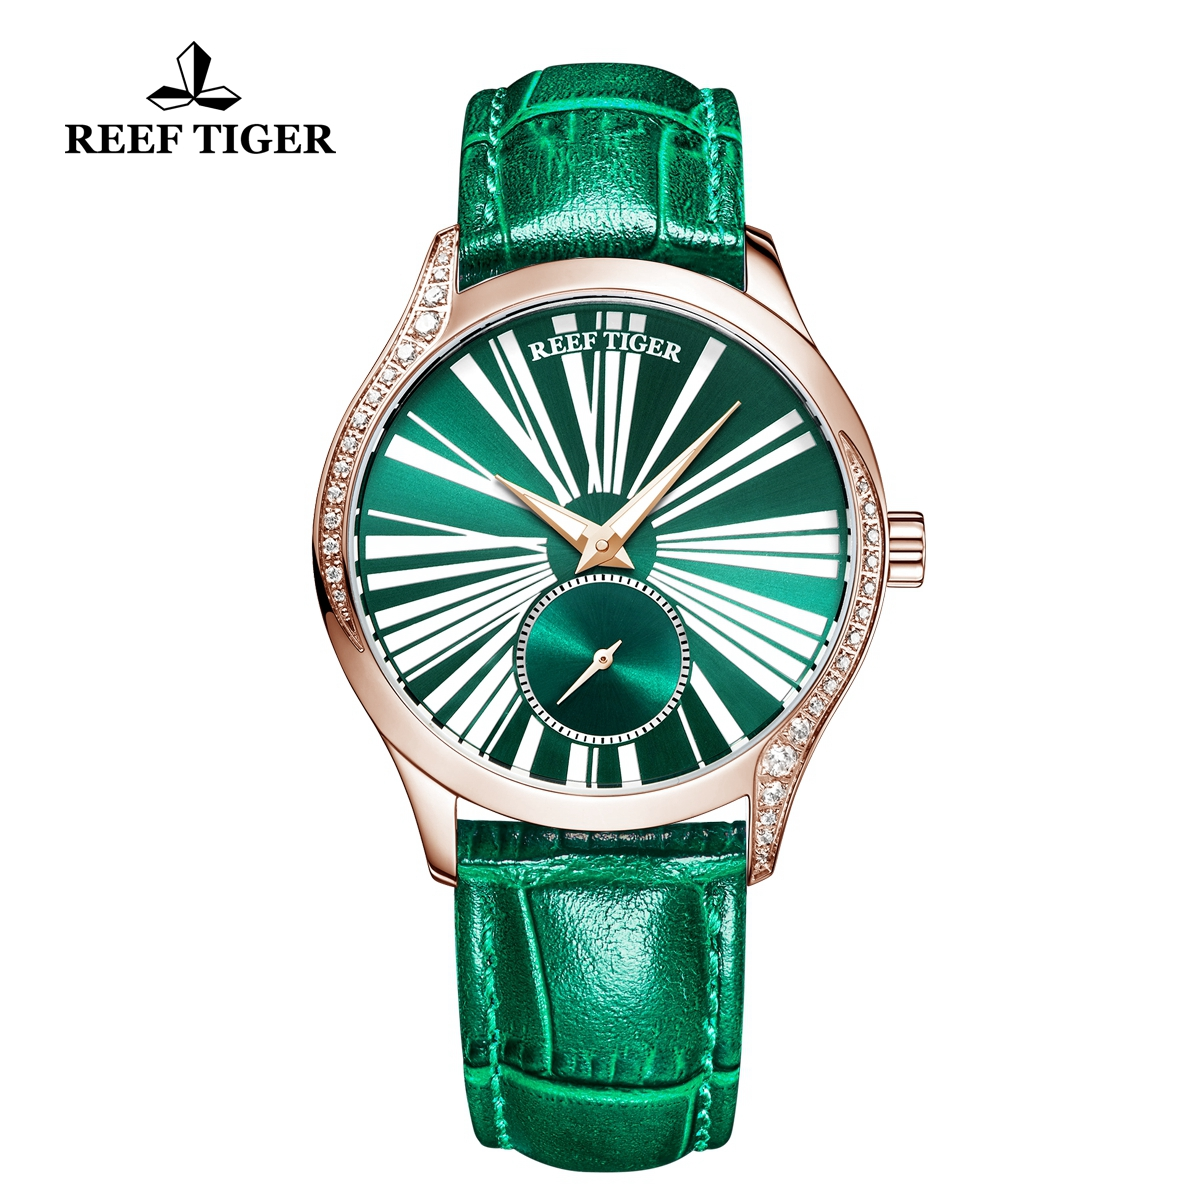 Reef Tiger Love Highness Casual Diamonds Bezel Watch Rose Gold Case Leather Strap RGA1561-PNN